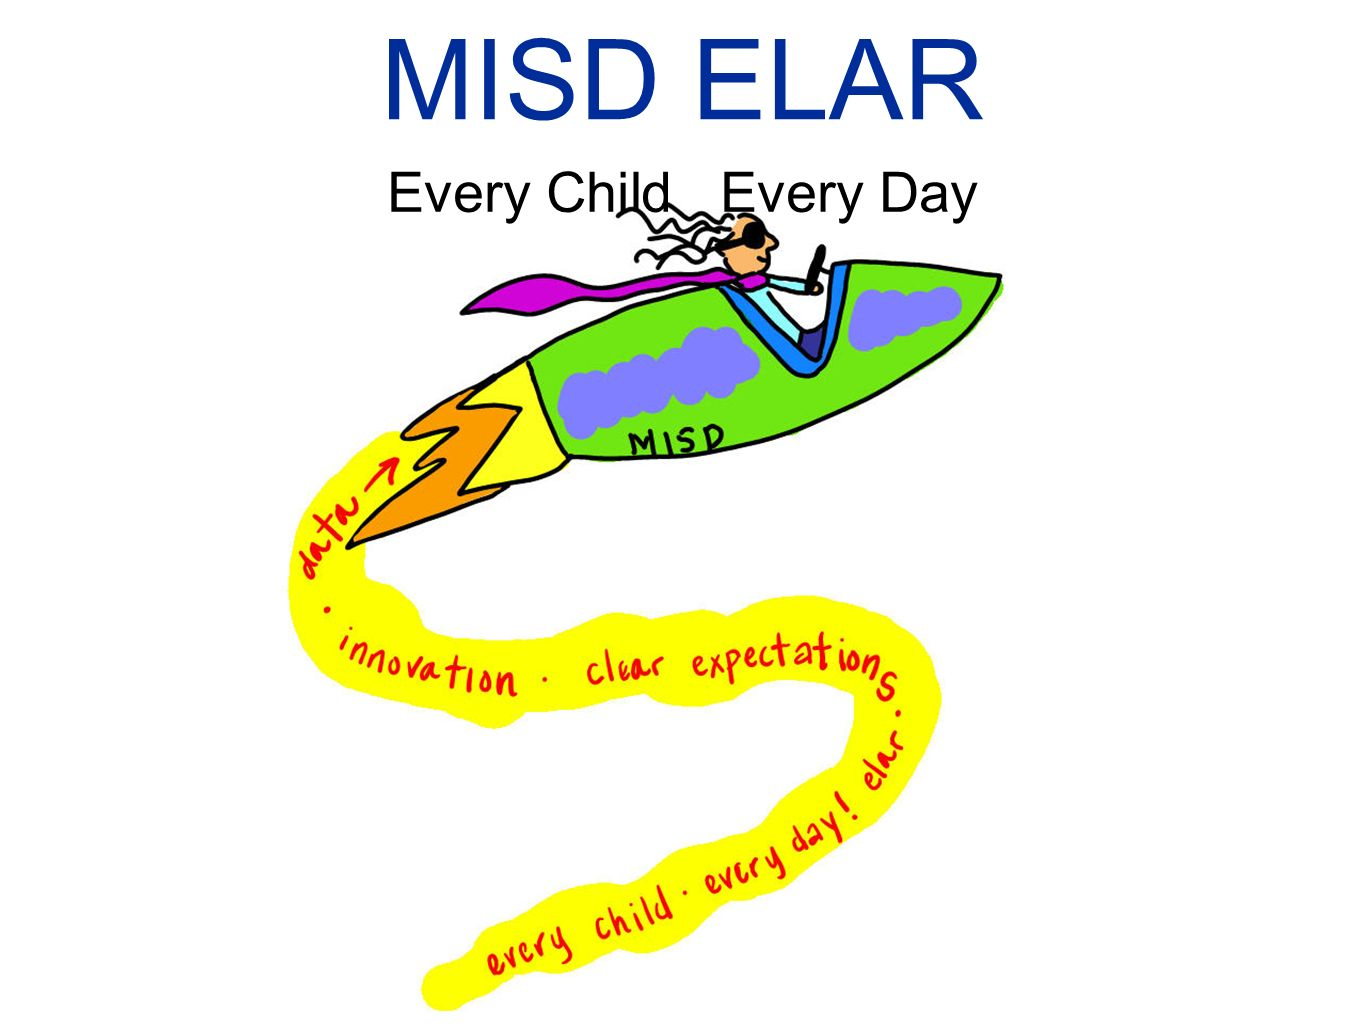 MISD ELAR Every Child Every Day